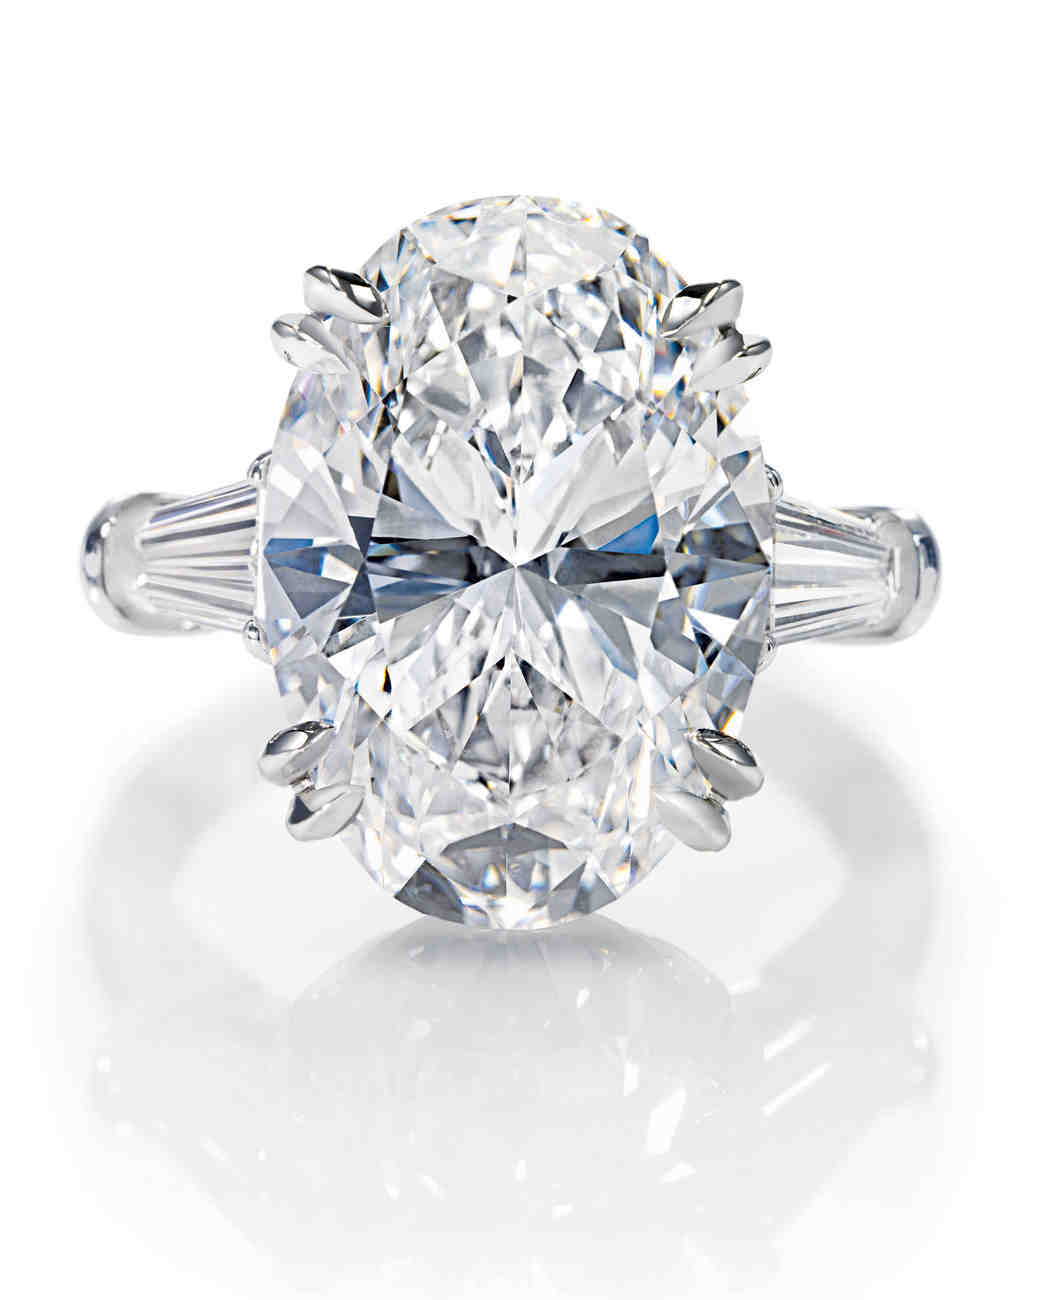 Diamond Ring Basics Cut Clarity Color and Carat Martha Stewart